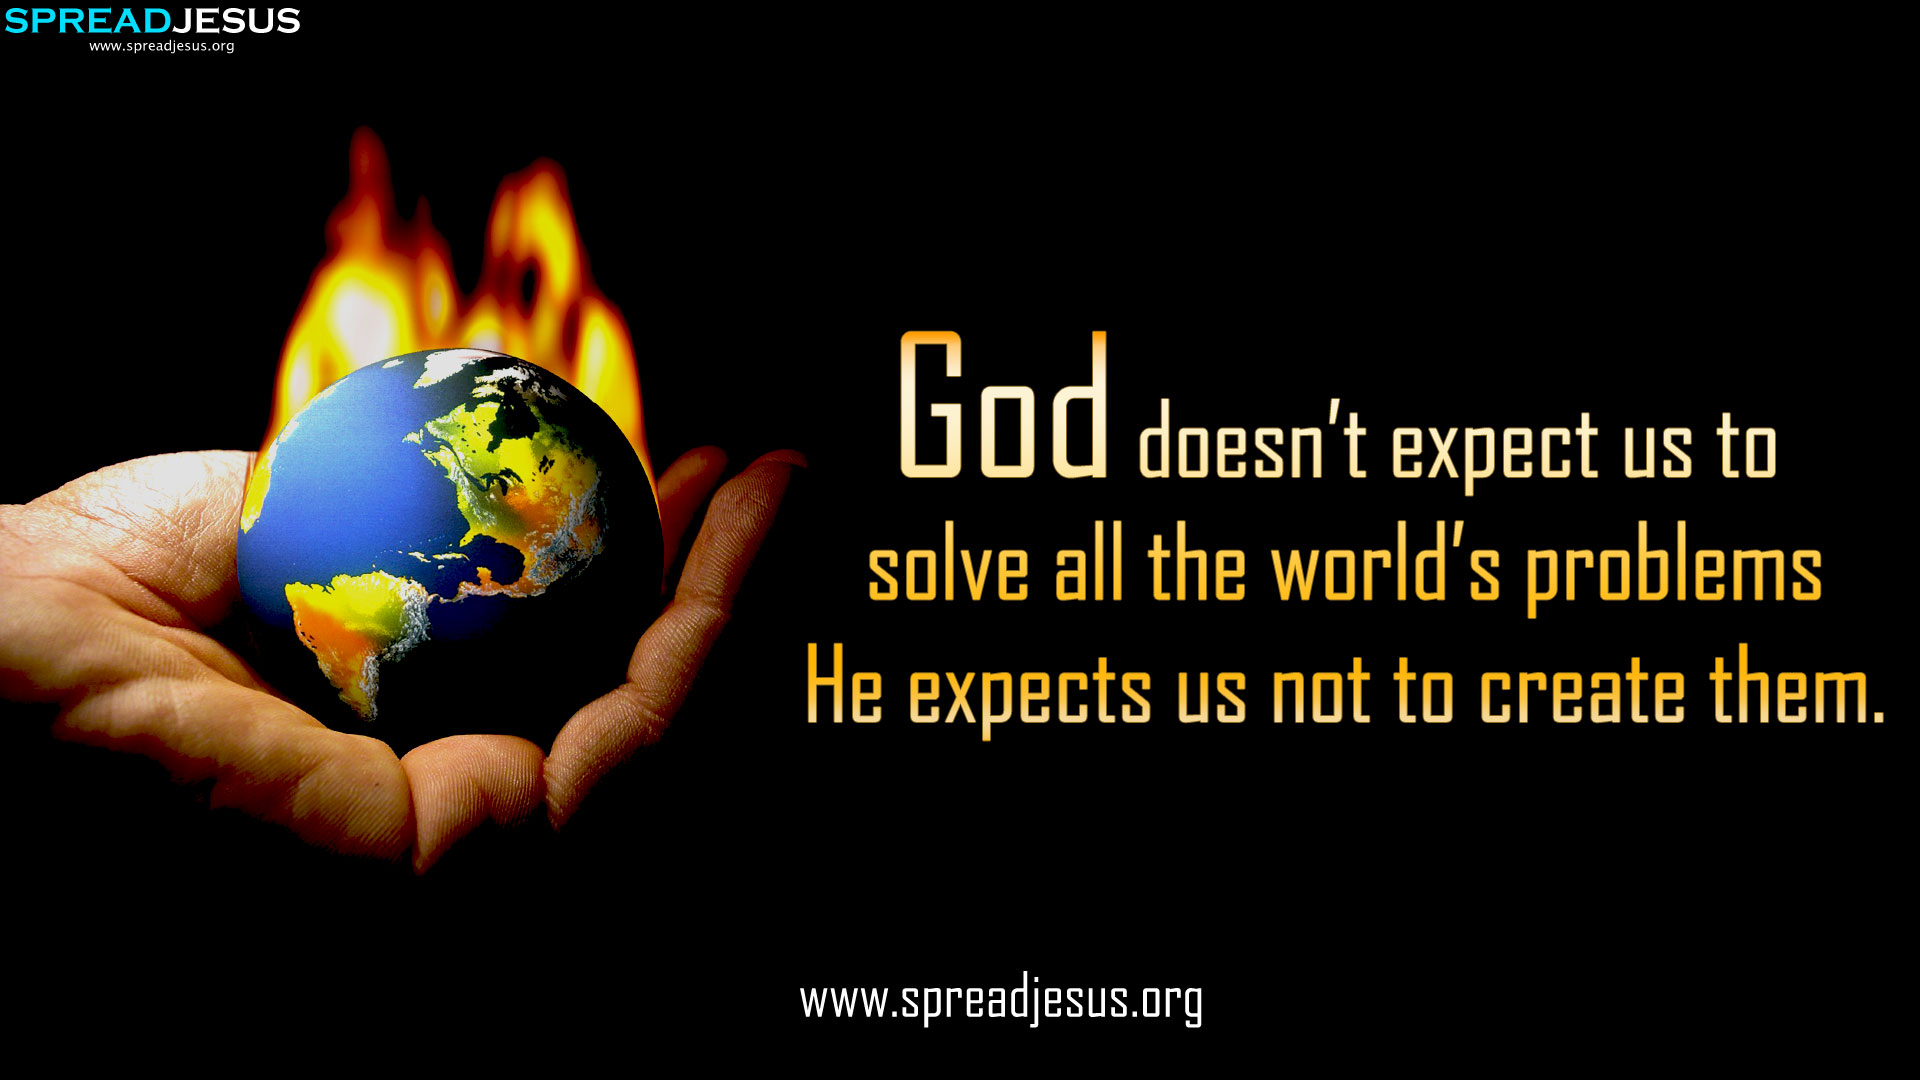 Christian Quotes HD-Wallpaper Download God doesn't expect us to solve all the world'd problems-spreadjesus.org